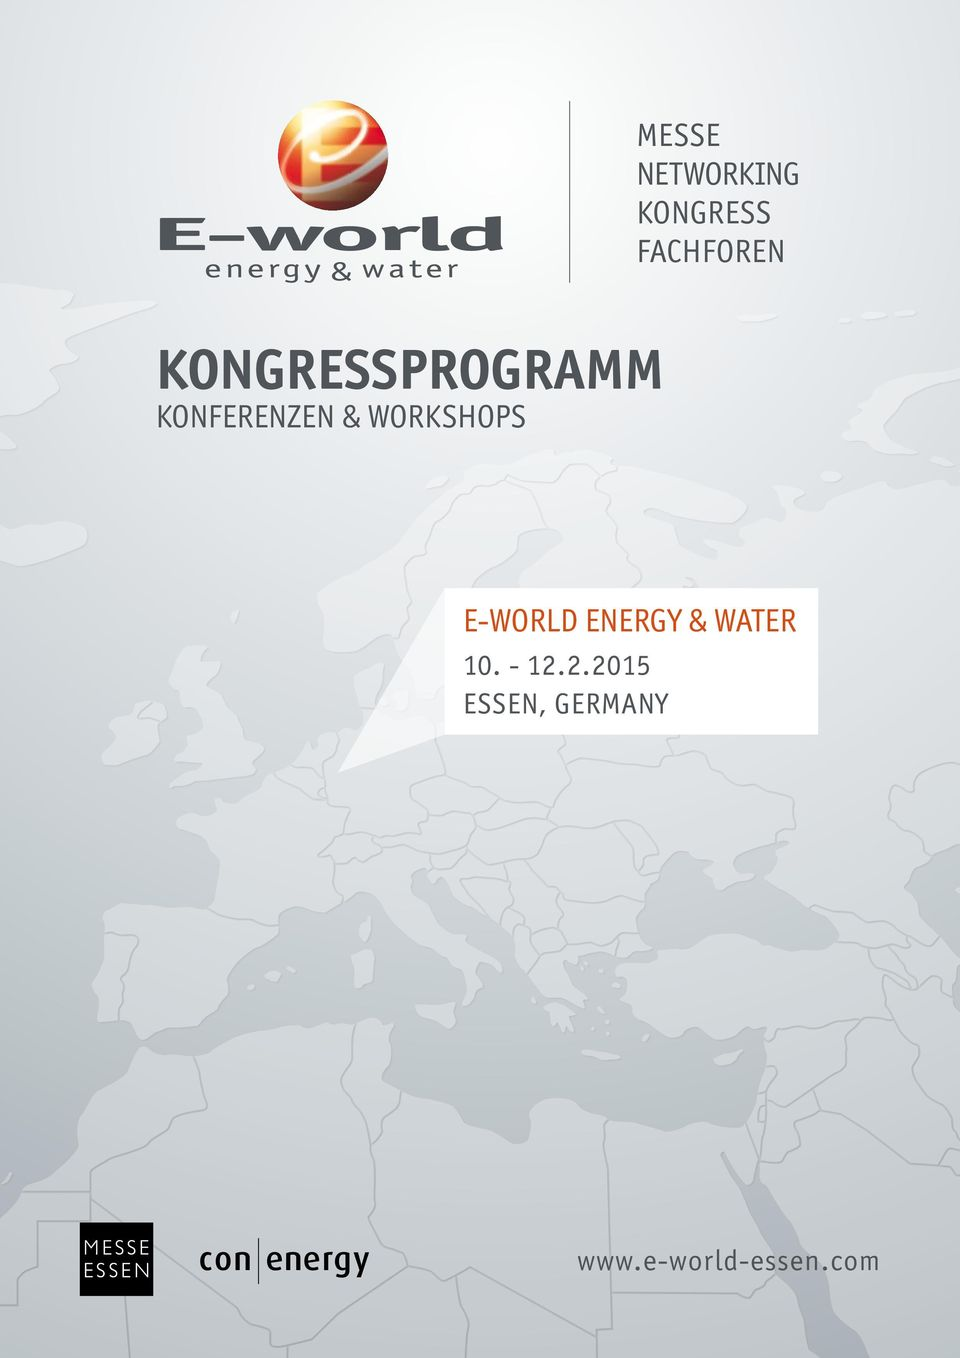 Workshops E-world energy & water 10.